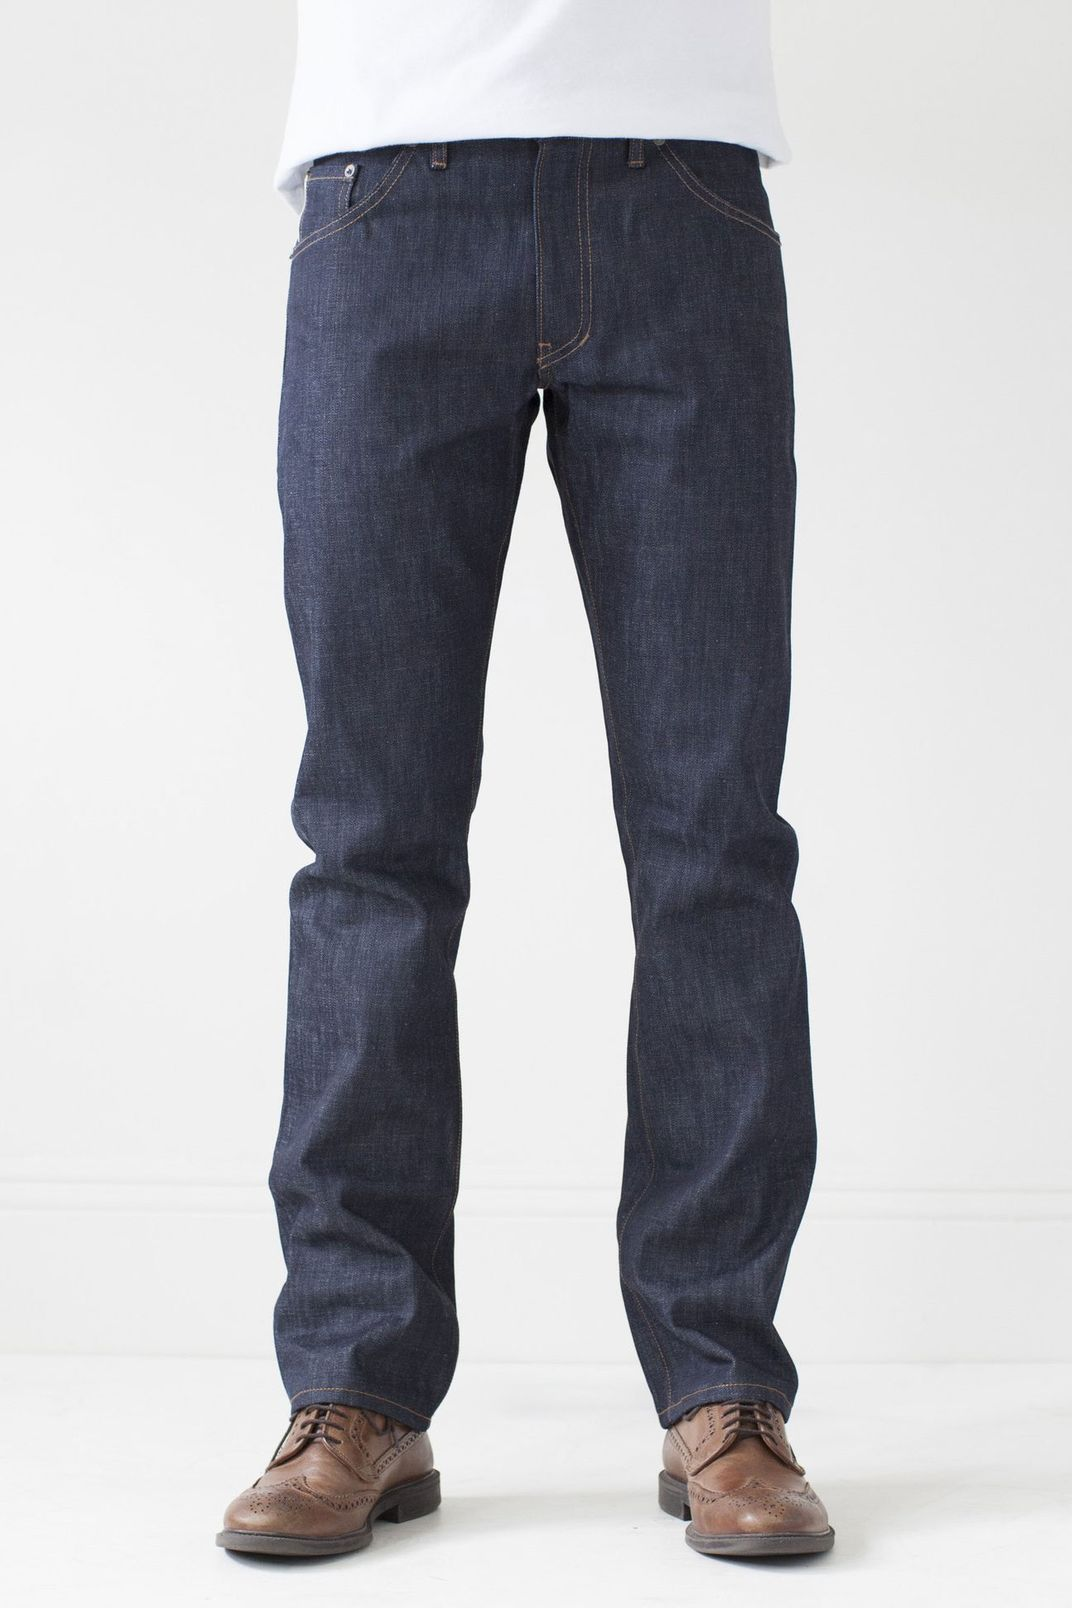 Raleigh Denim Jones Thin Fit Jeans, Raw Selvedge